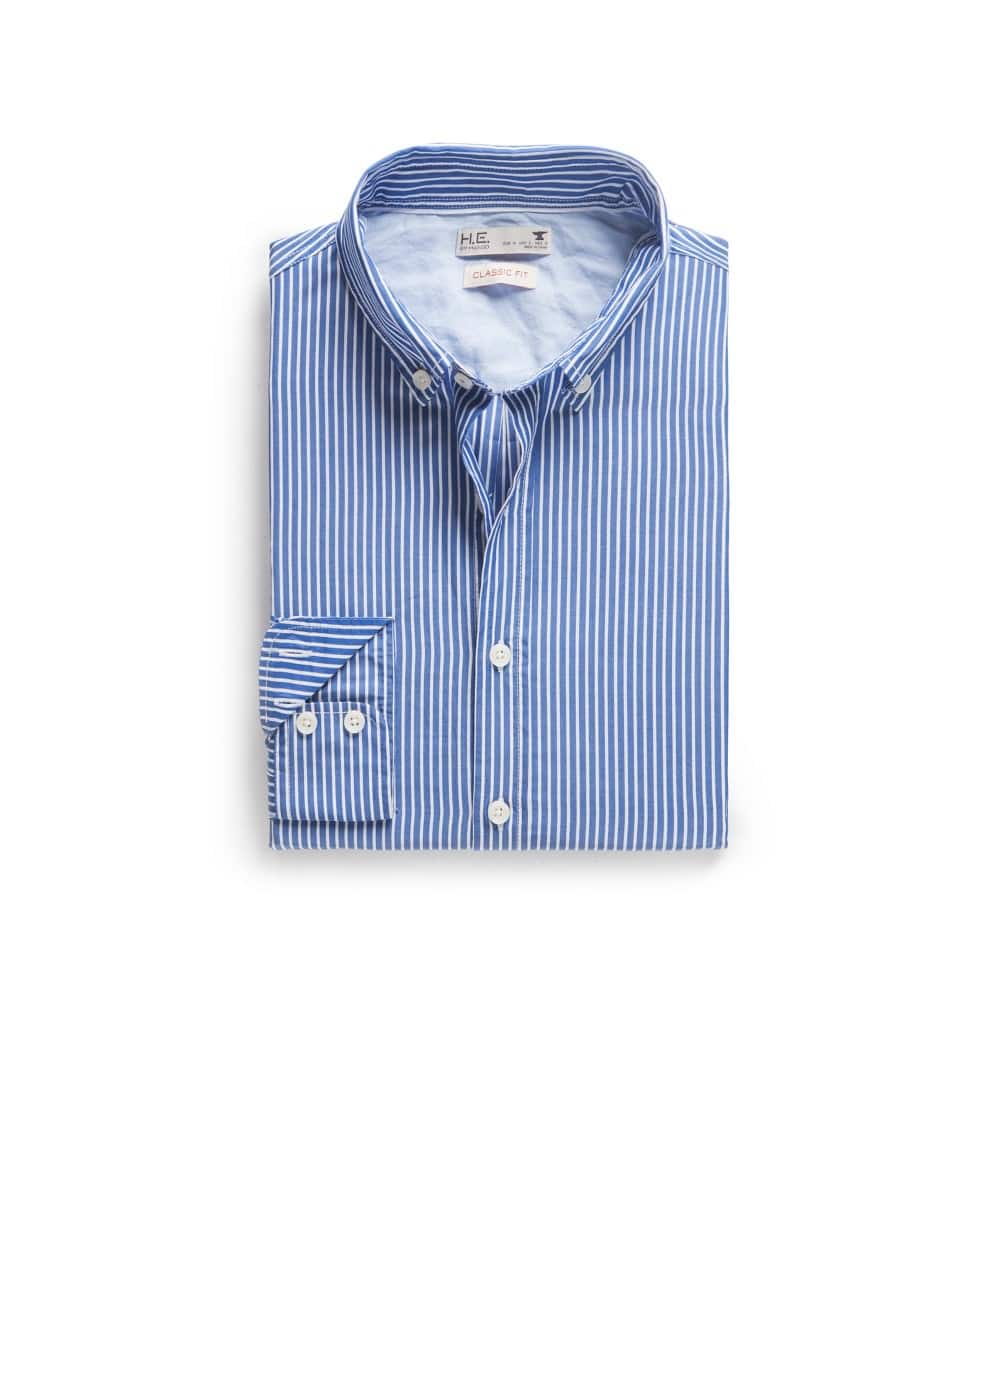 Classic-fit bengal stripe shirt